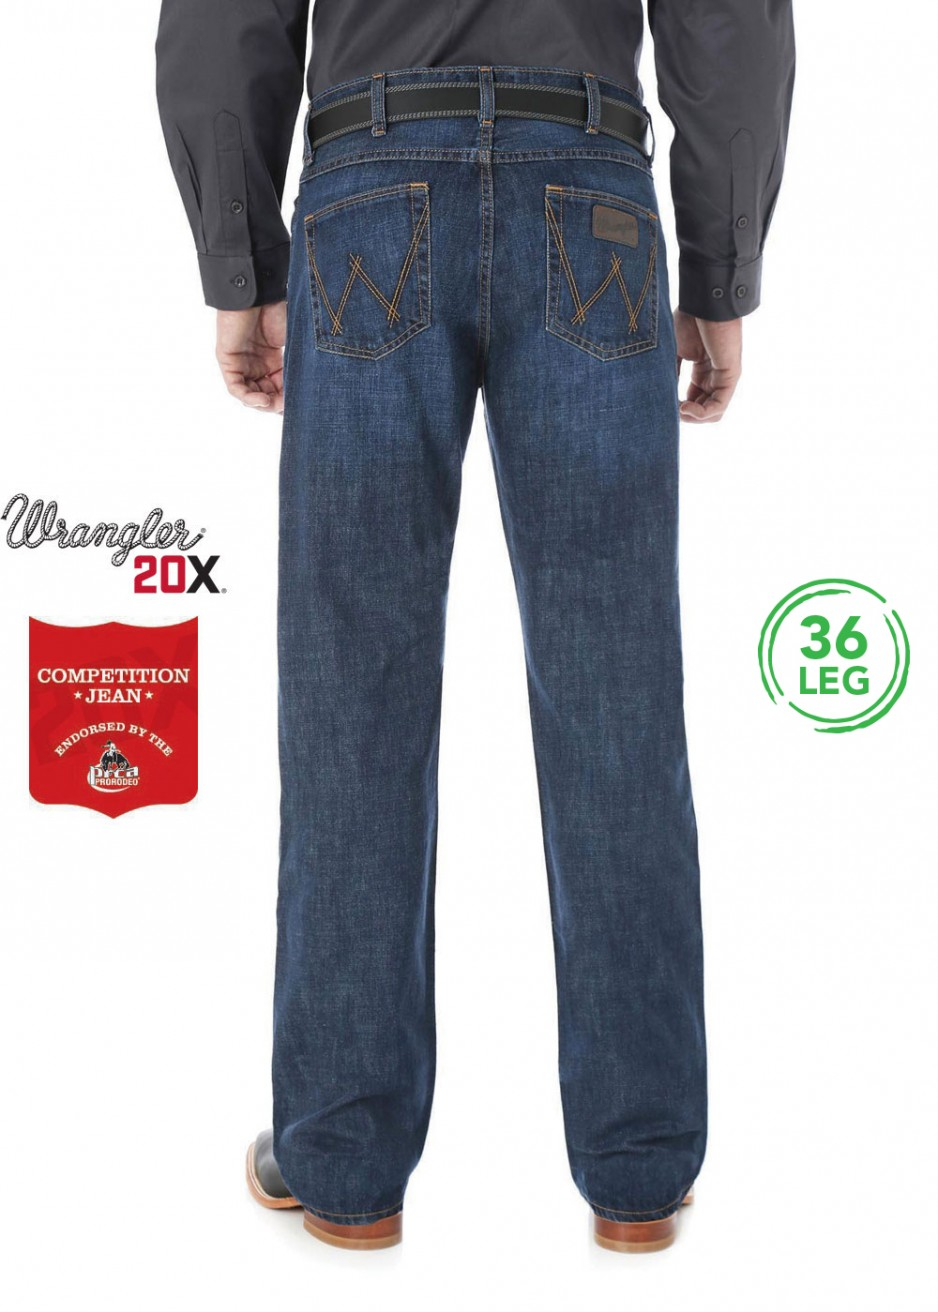 MENS 20X COMPETITION SLIM FIT JEAN